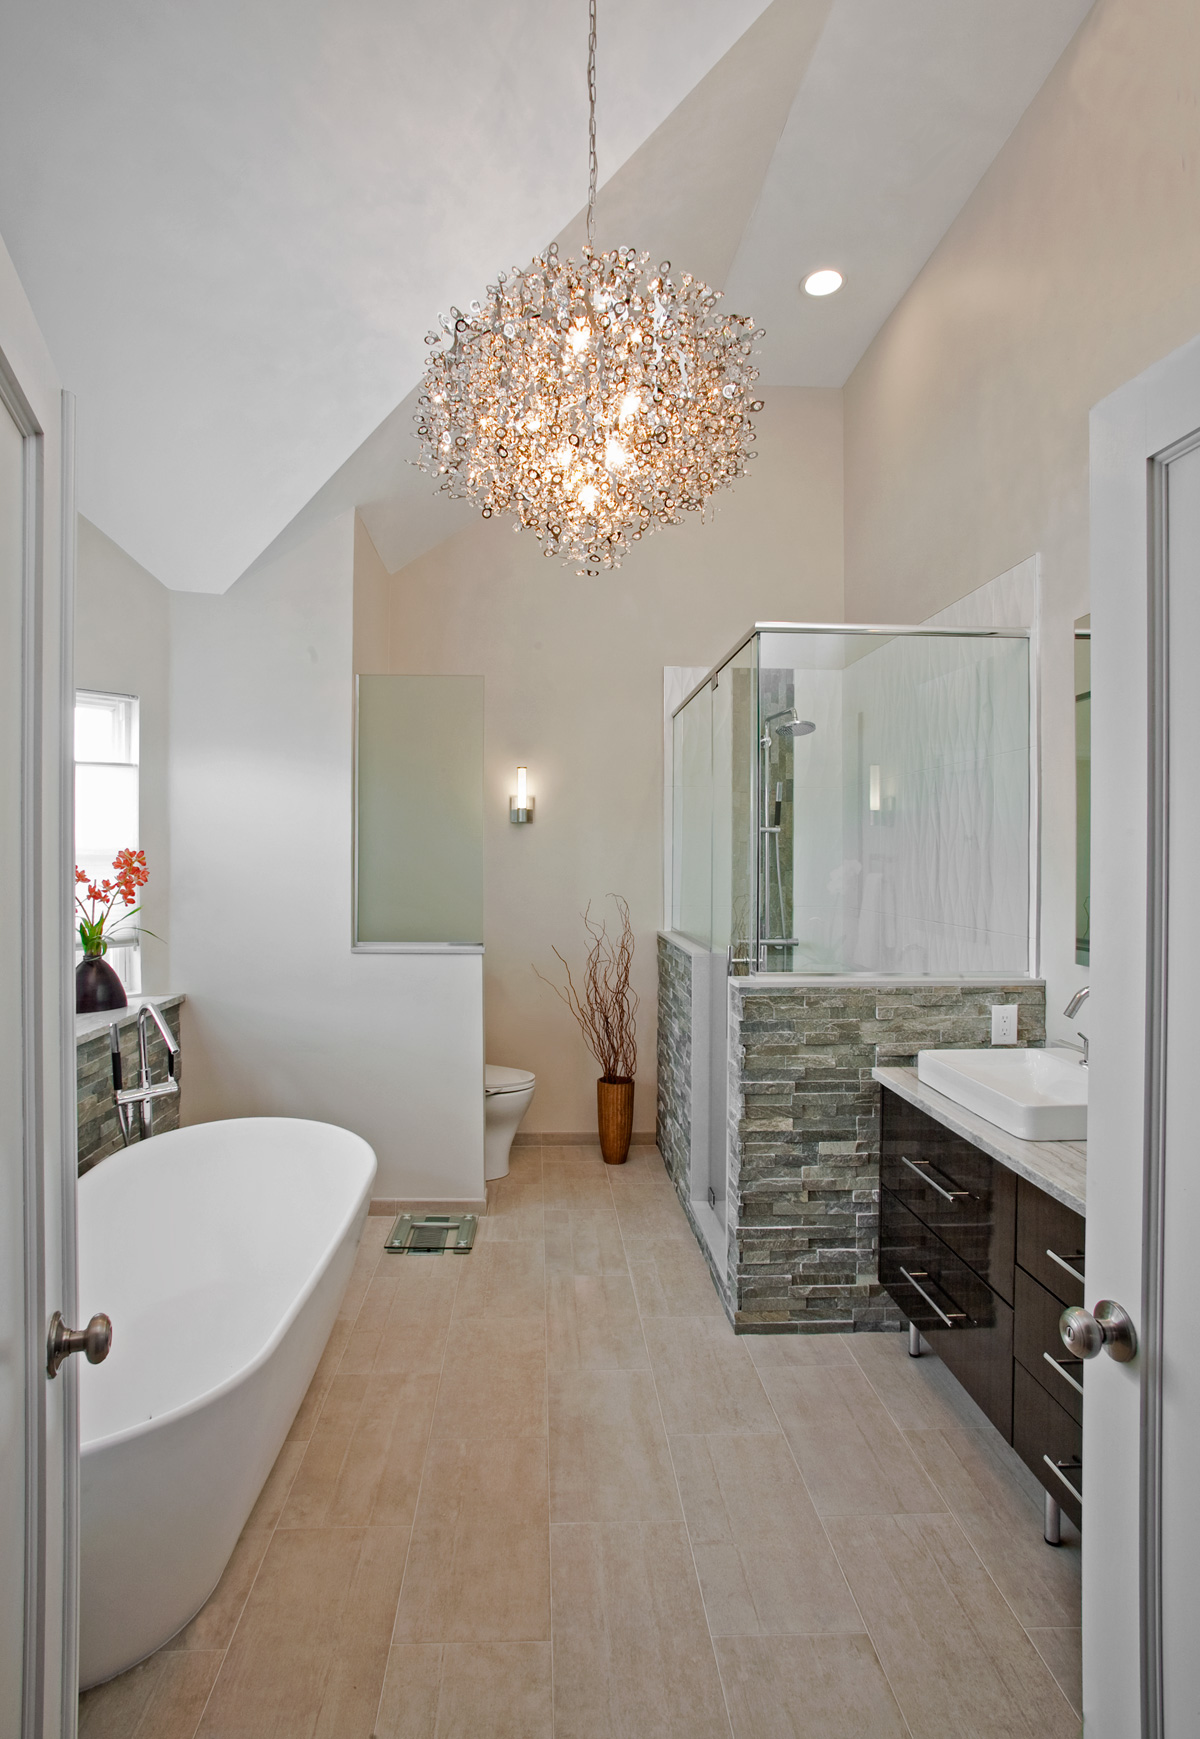 Pics Of Bathroom Designs Modern Bathrooms Designs And Remodeling Htrenovations